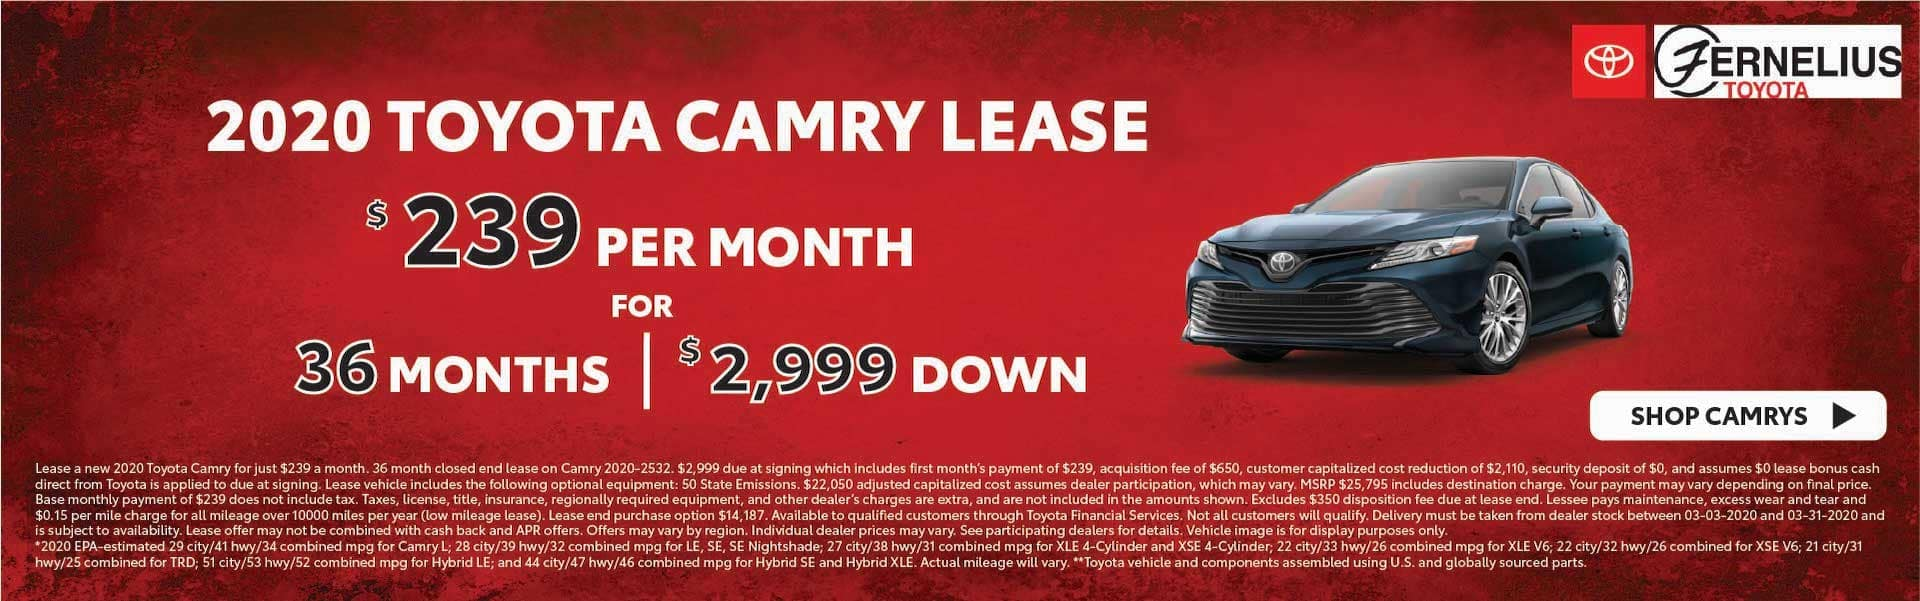 2020 Camry lease